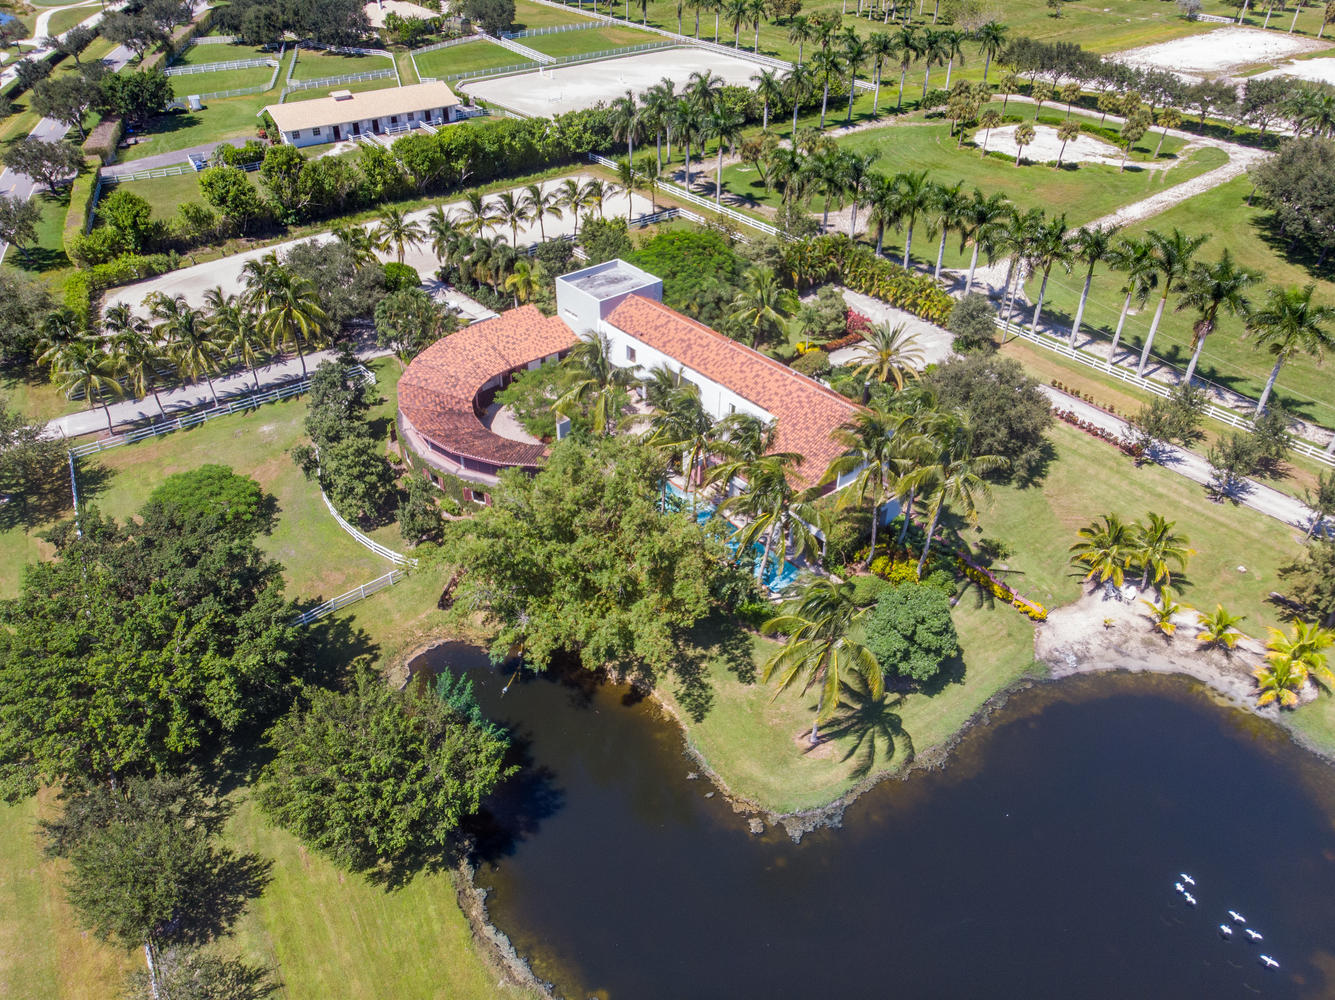 4601 Garden Point Trail, Wellington, Florida 33414, 4 Bedrooms Bedrooms, ,4.1 BathroomsBathrooms,Single Family,For Sale,Palm Beach Point,Garden Point,1,RX-10565600